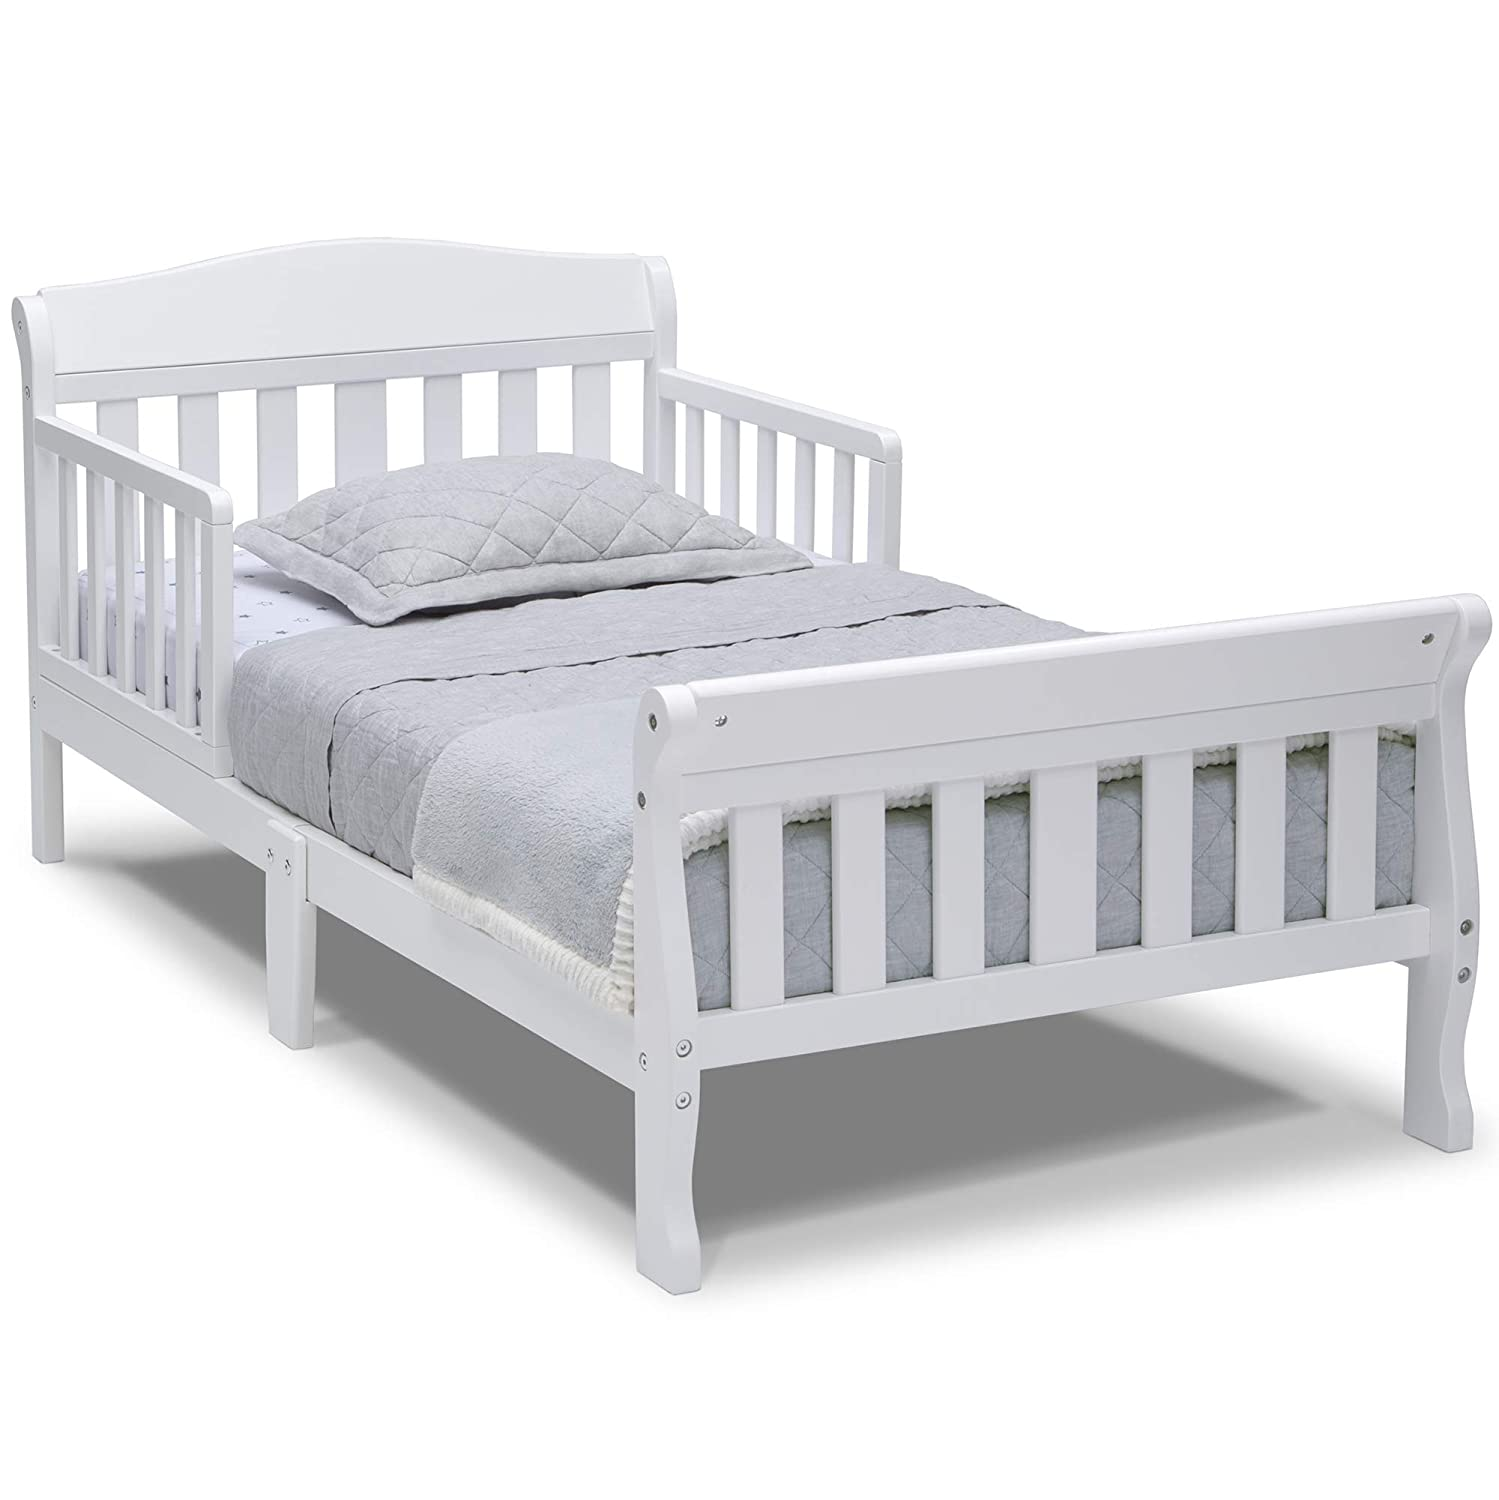 Top 10 Best Toddler Beds (2020 Reviews & Buying Guide) 6